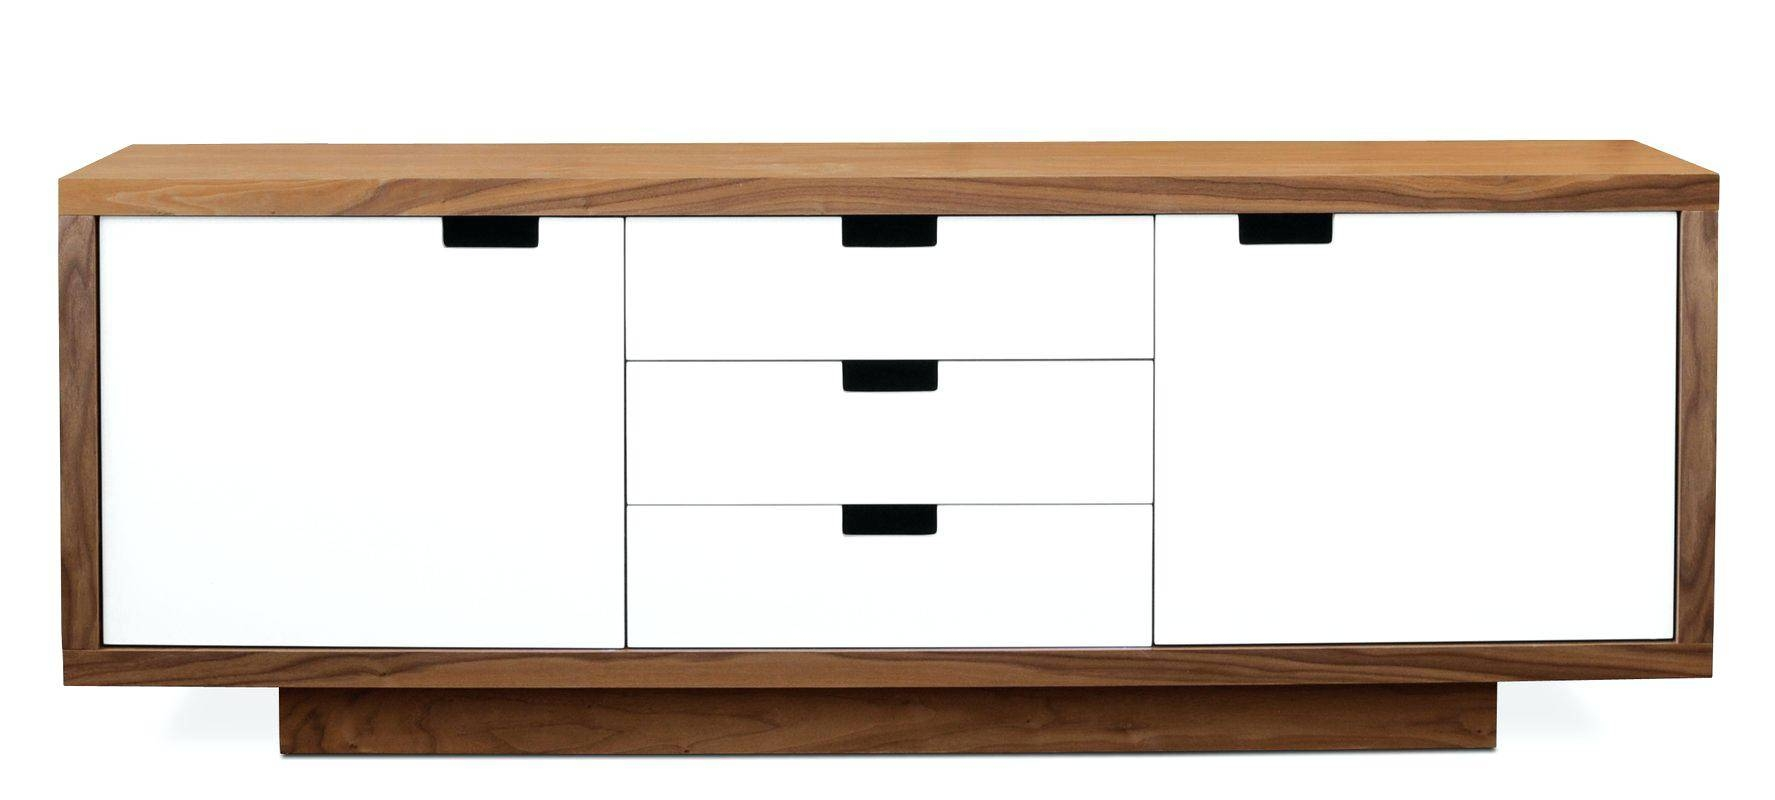 Articles With Birch Tv Stands Furniture Tag: Superb Birch Tv Stand With Birch Tv Stands (View 7 of 15)